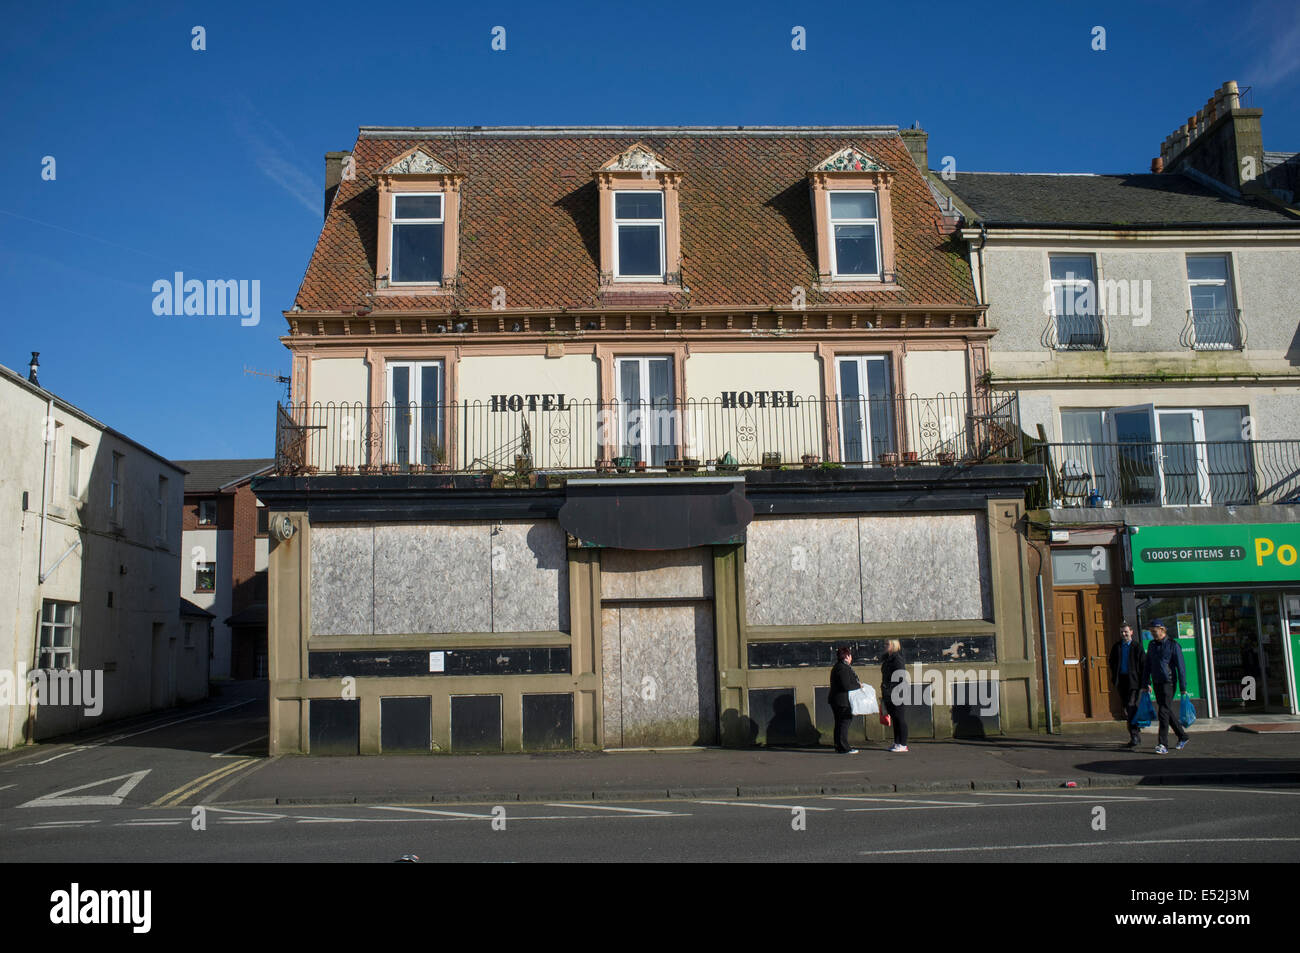 Abandoned hotel on the seafront in Largs, Scotland - Stock Image